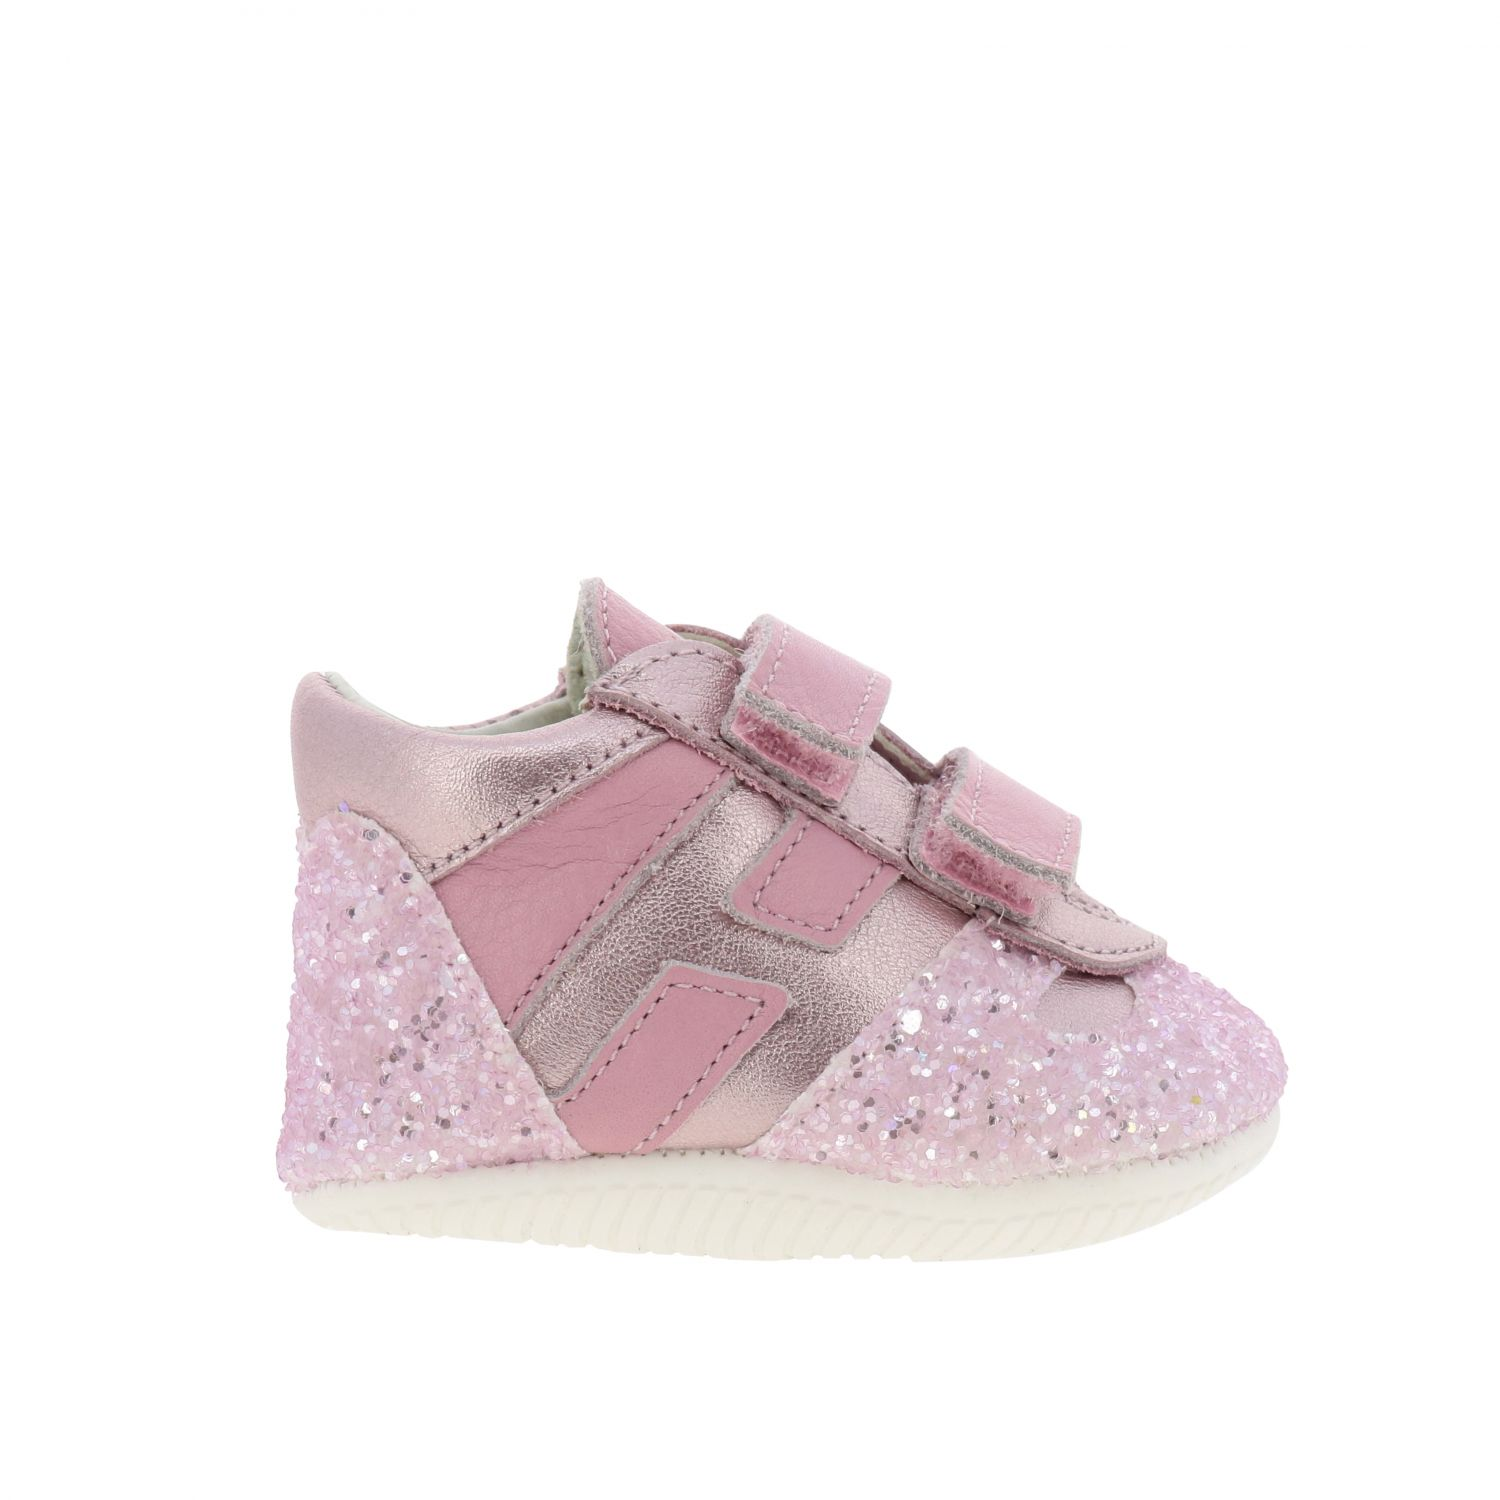 Olympia Hogan laminated leather and glitter sneakers with Velcro straps pink 1